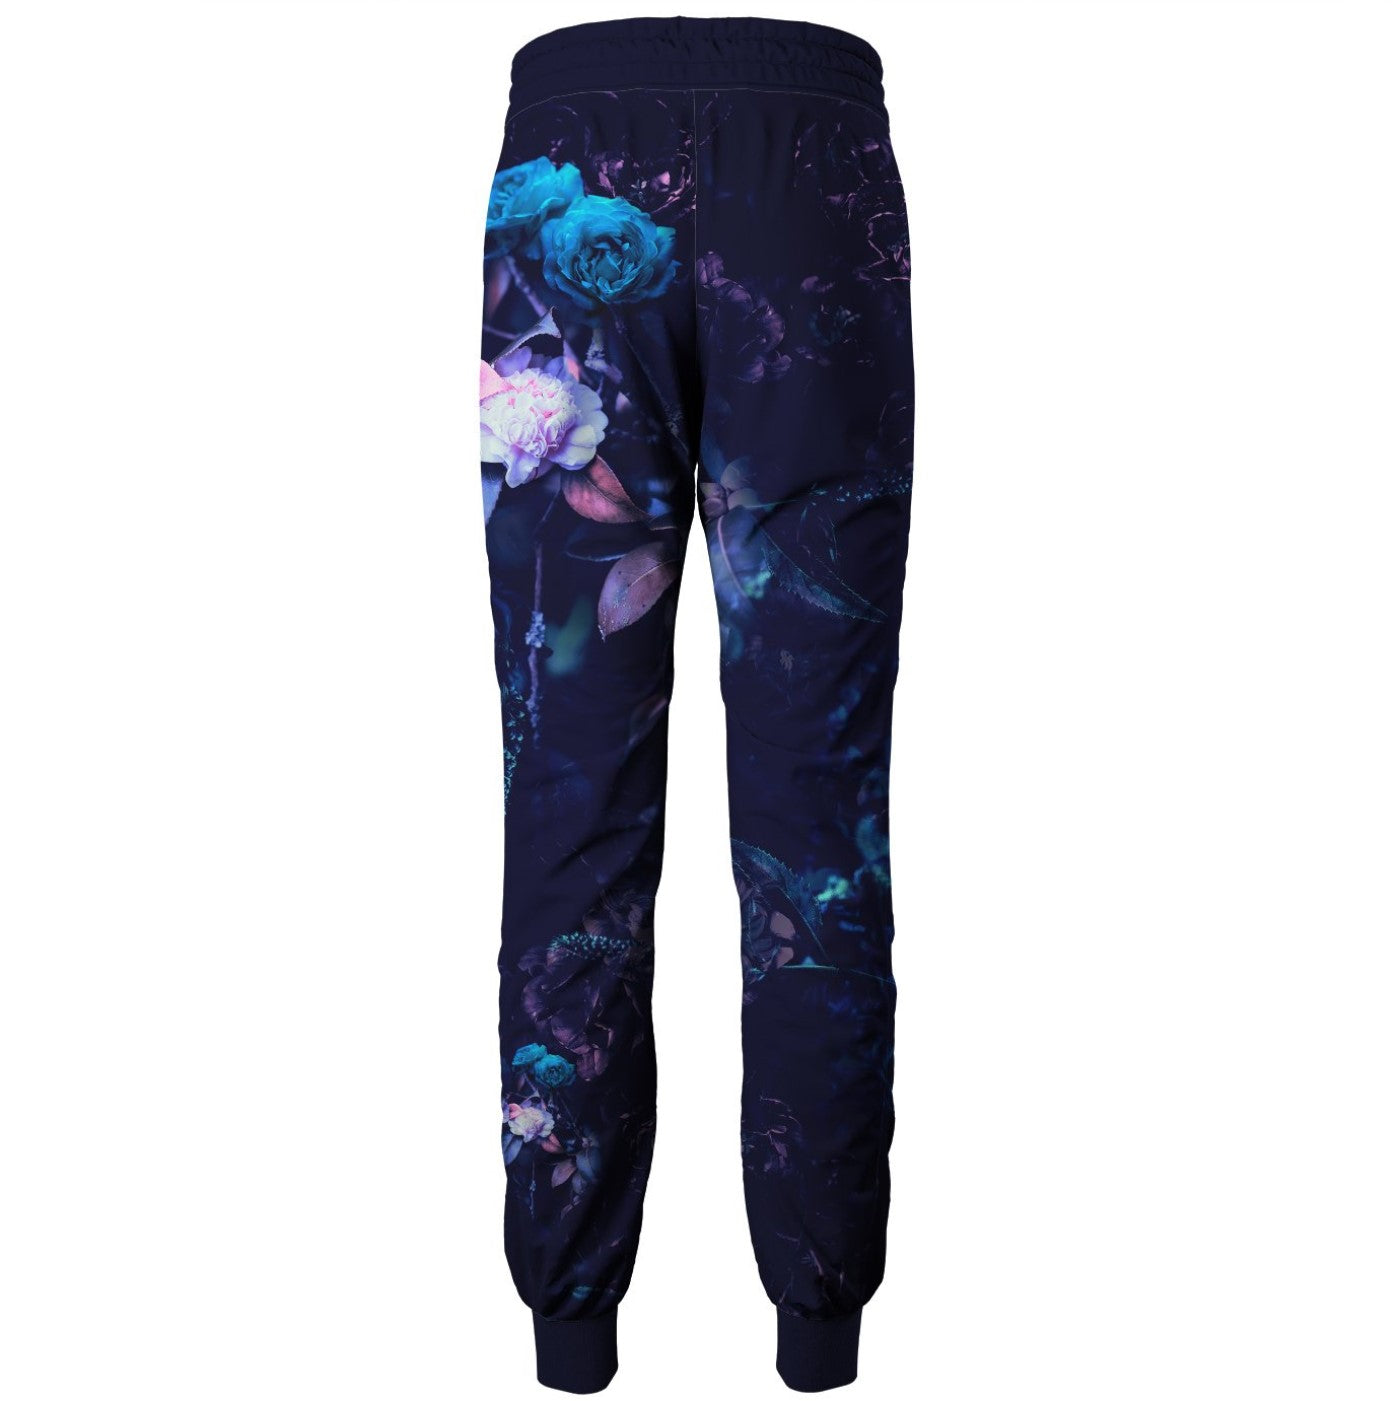 Ocean Plants Sweatpants